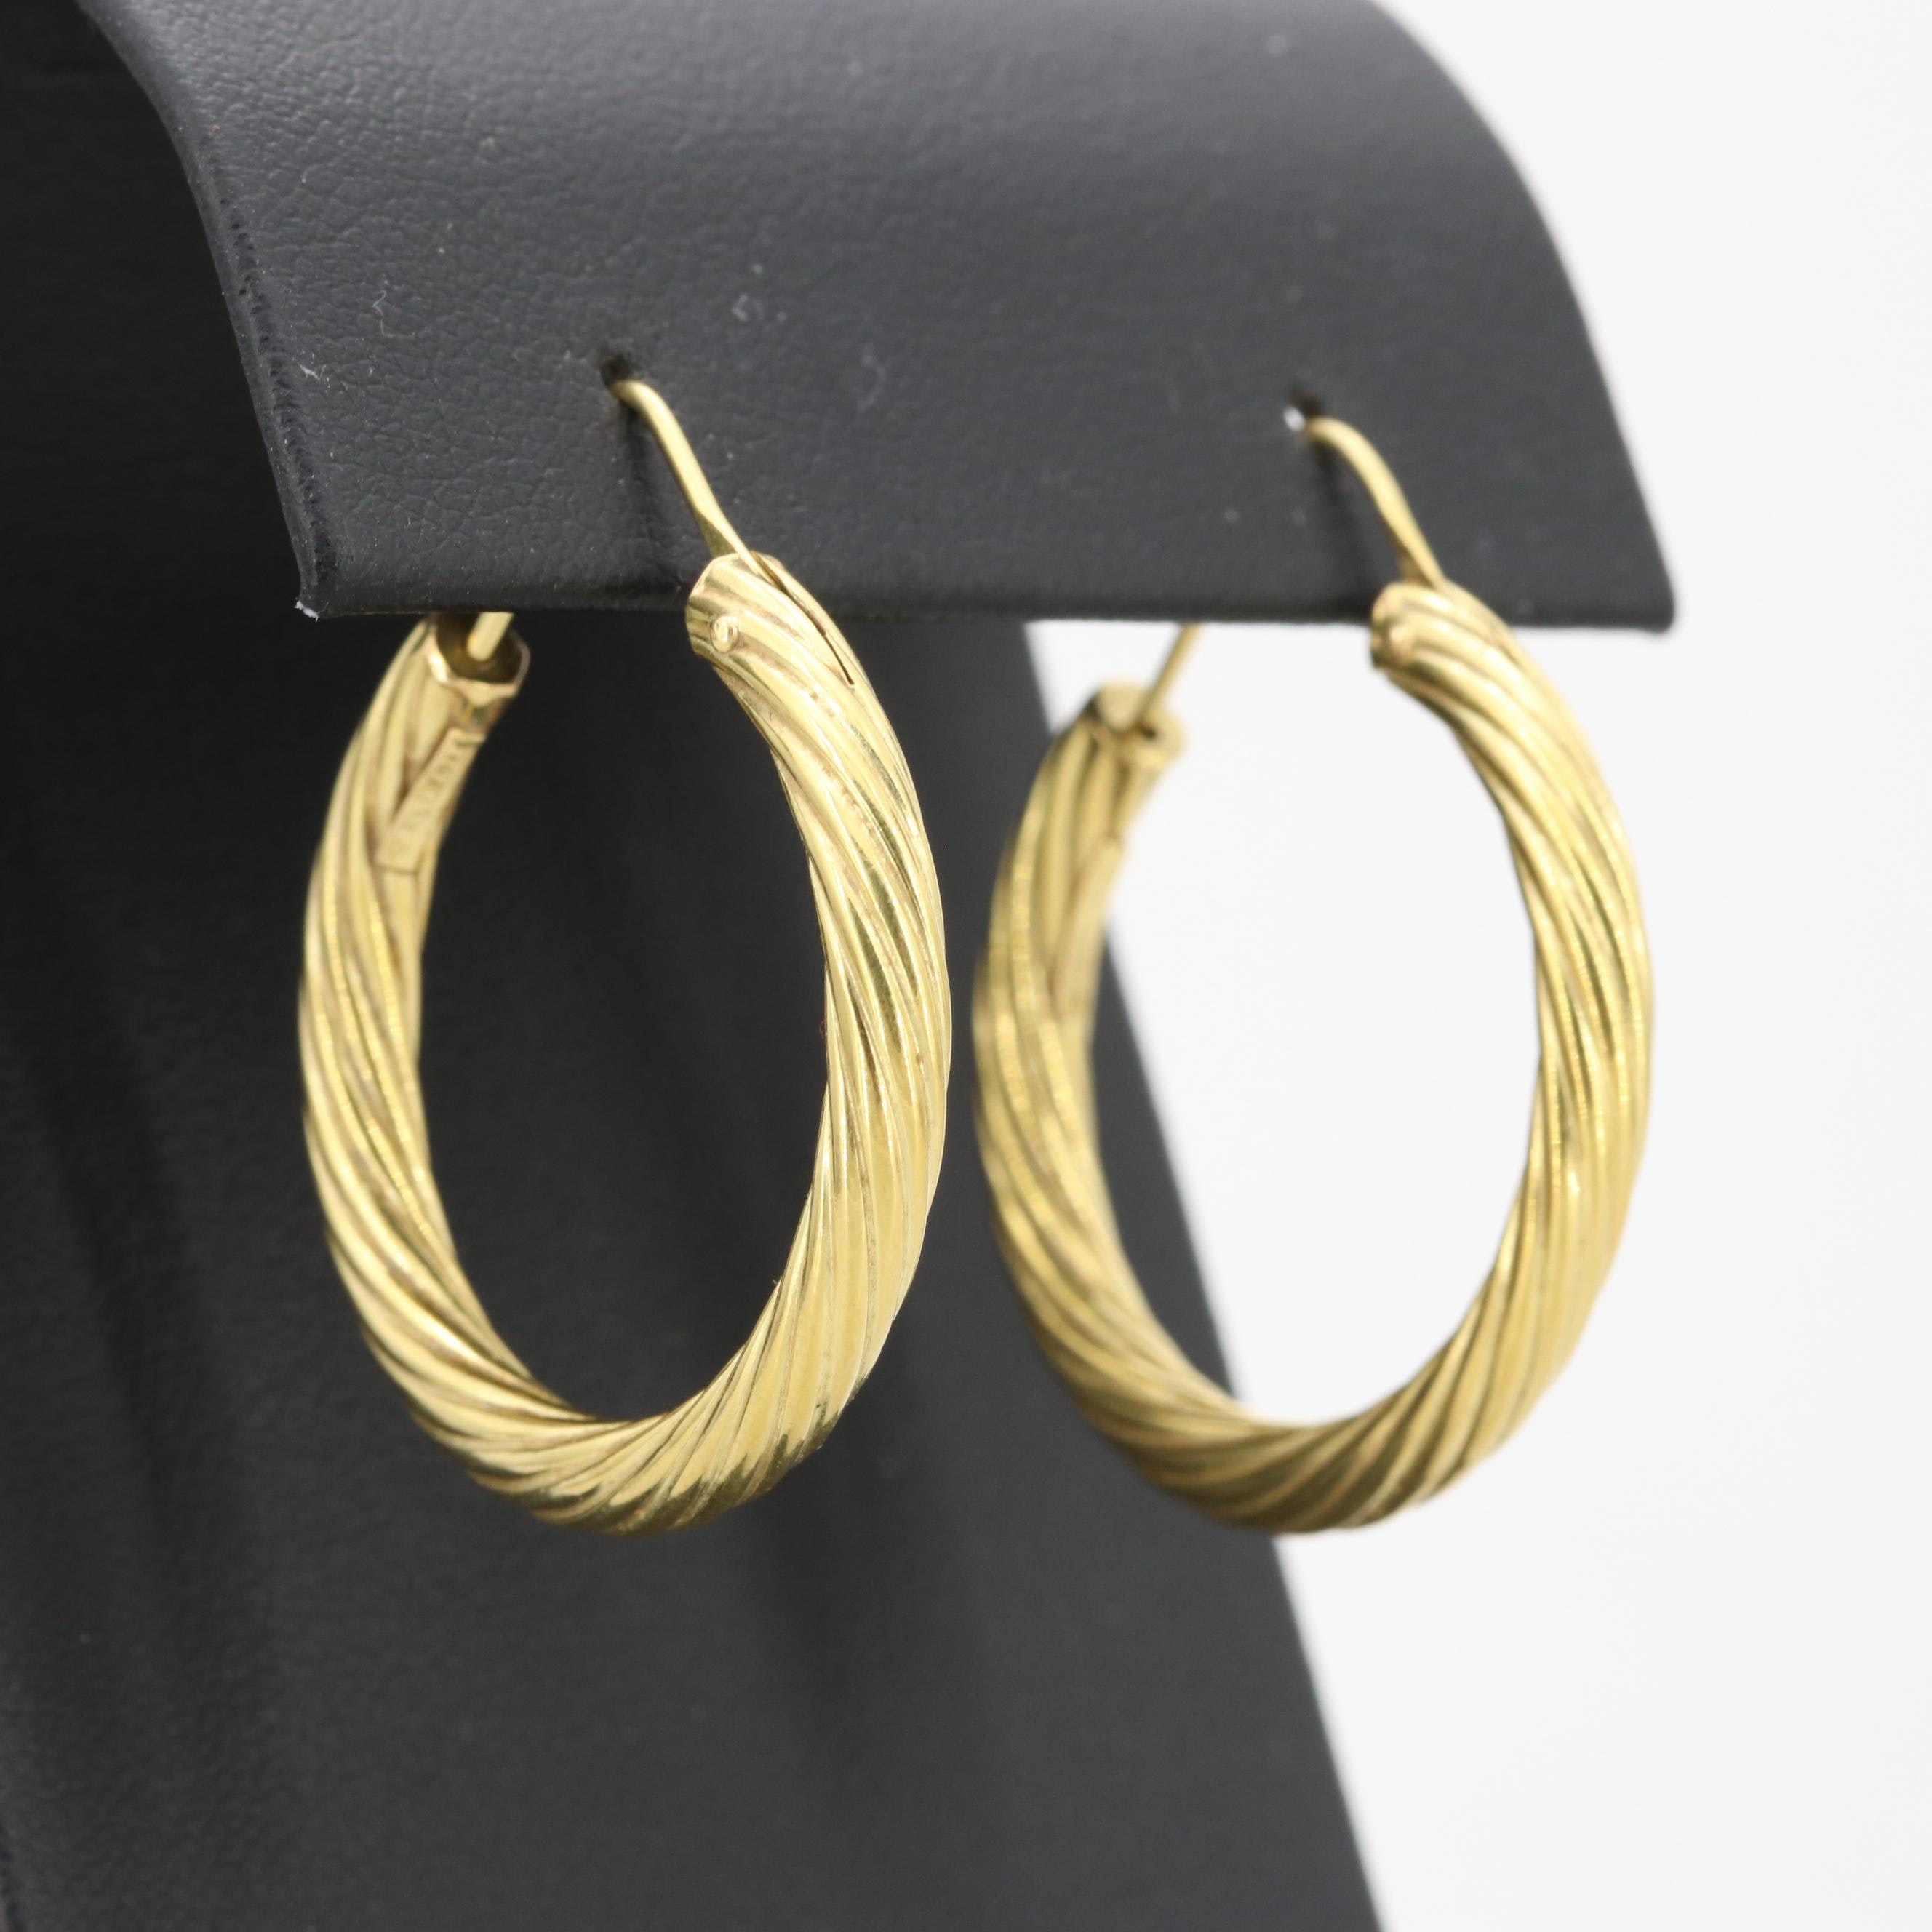 18K Yellow Gold Twist Design Hoop Earrings